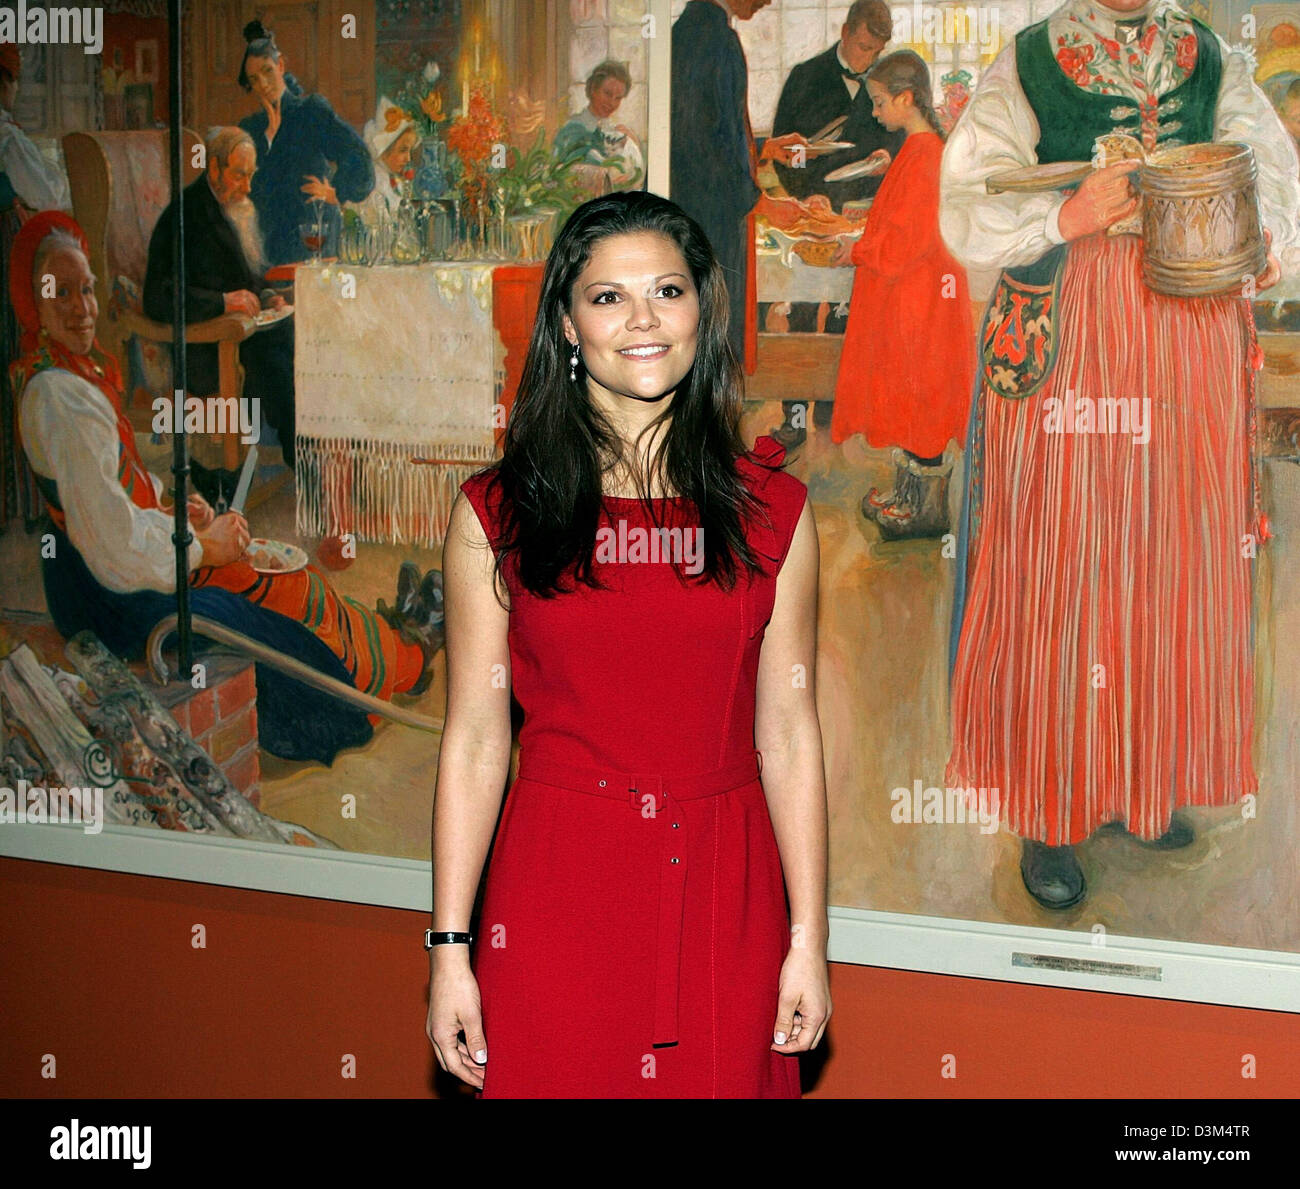 (dpa) - Crown Princess Victoria of Sweden poses in front of a painting during the opening of the exhibition 'Carl Stock Photo